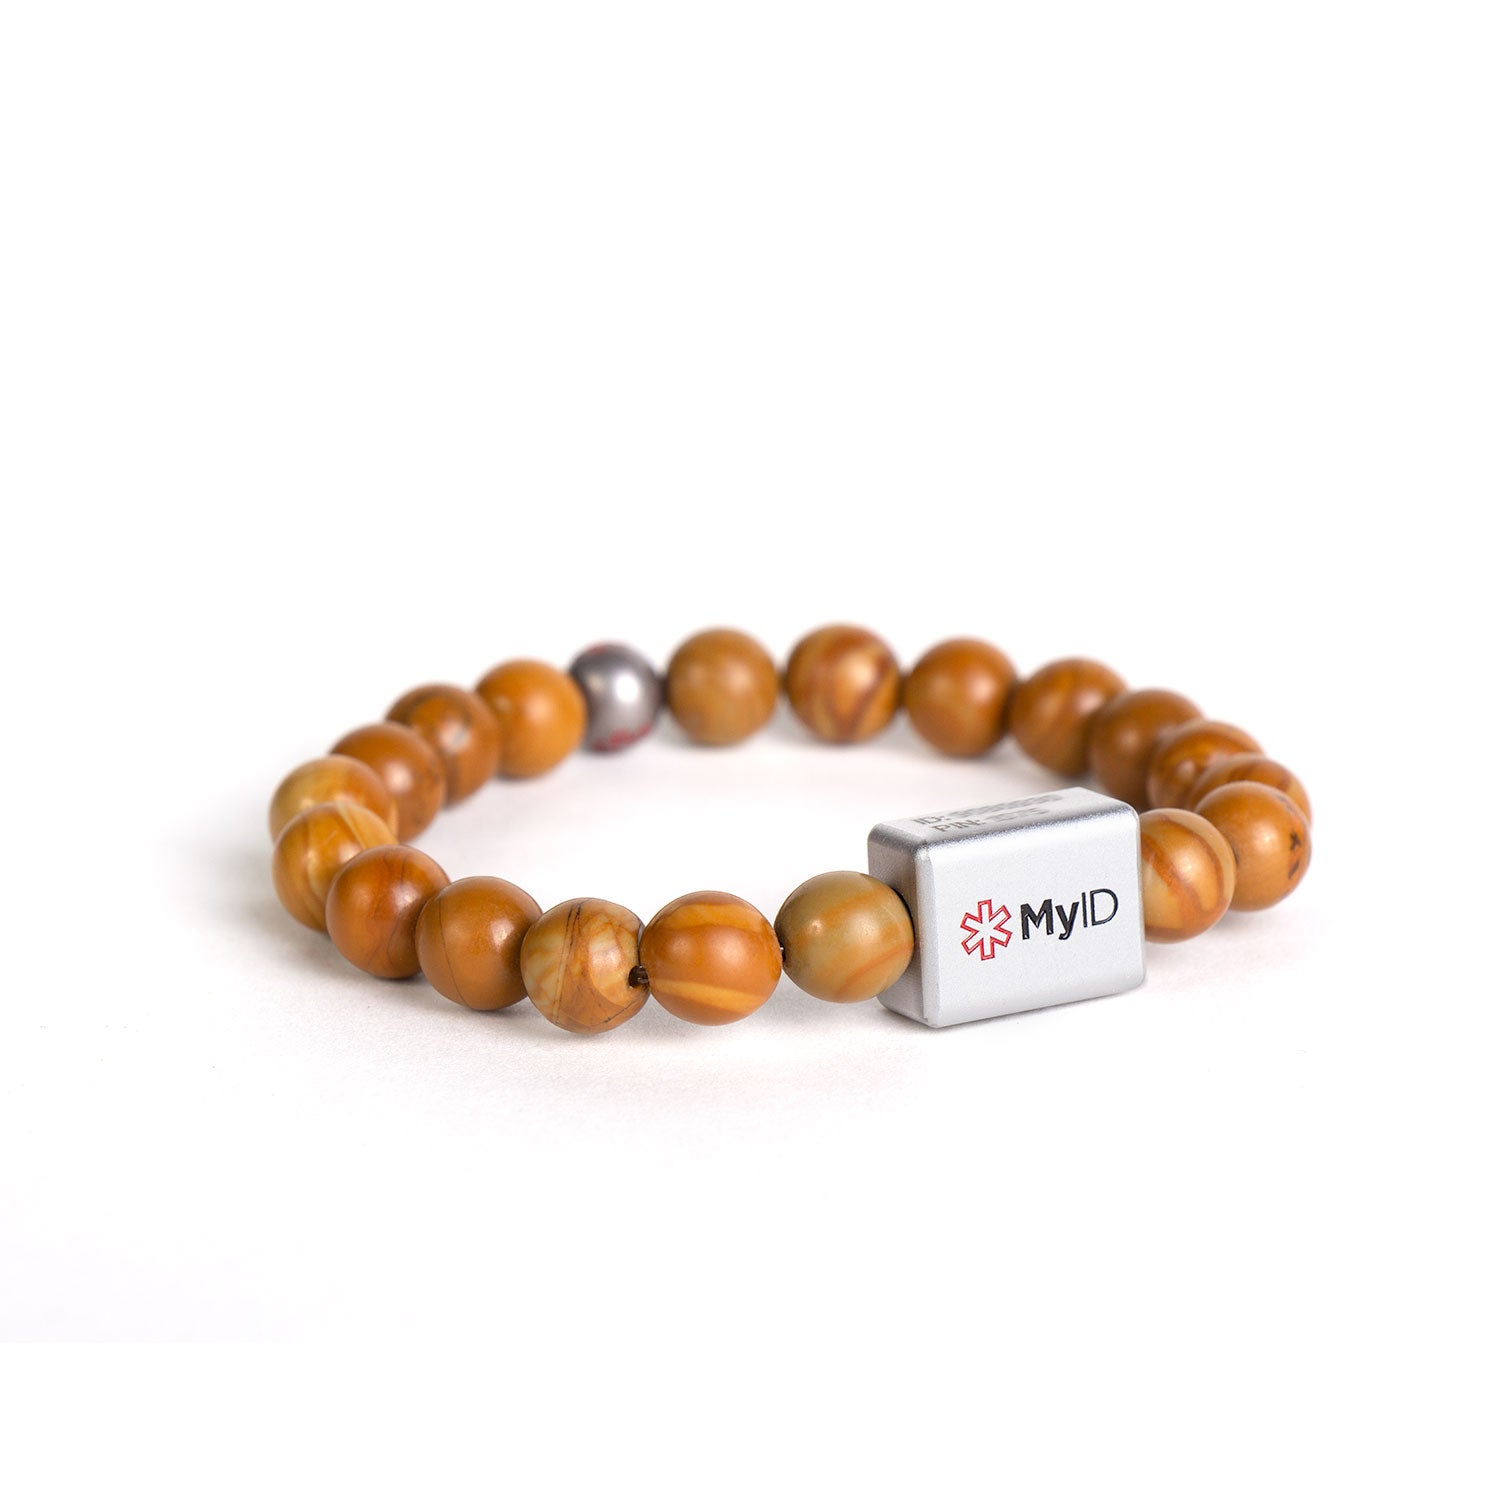 Serpeggiante Medical ID Bracelet